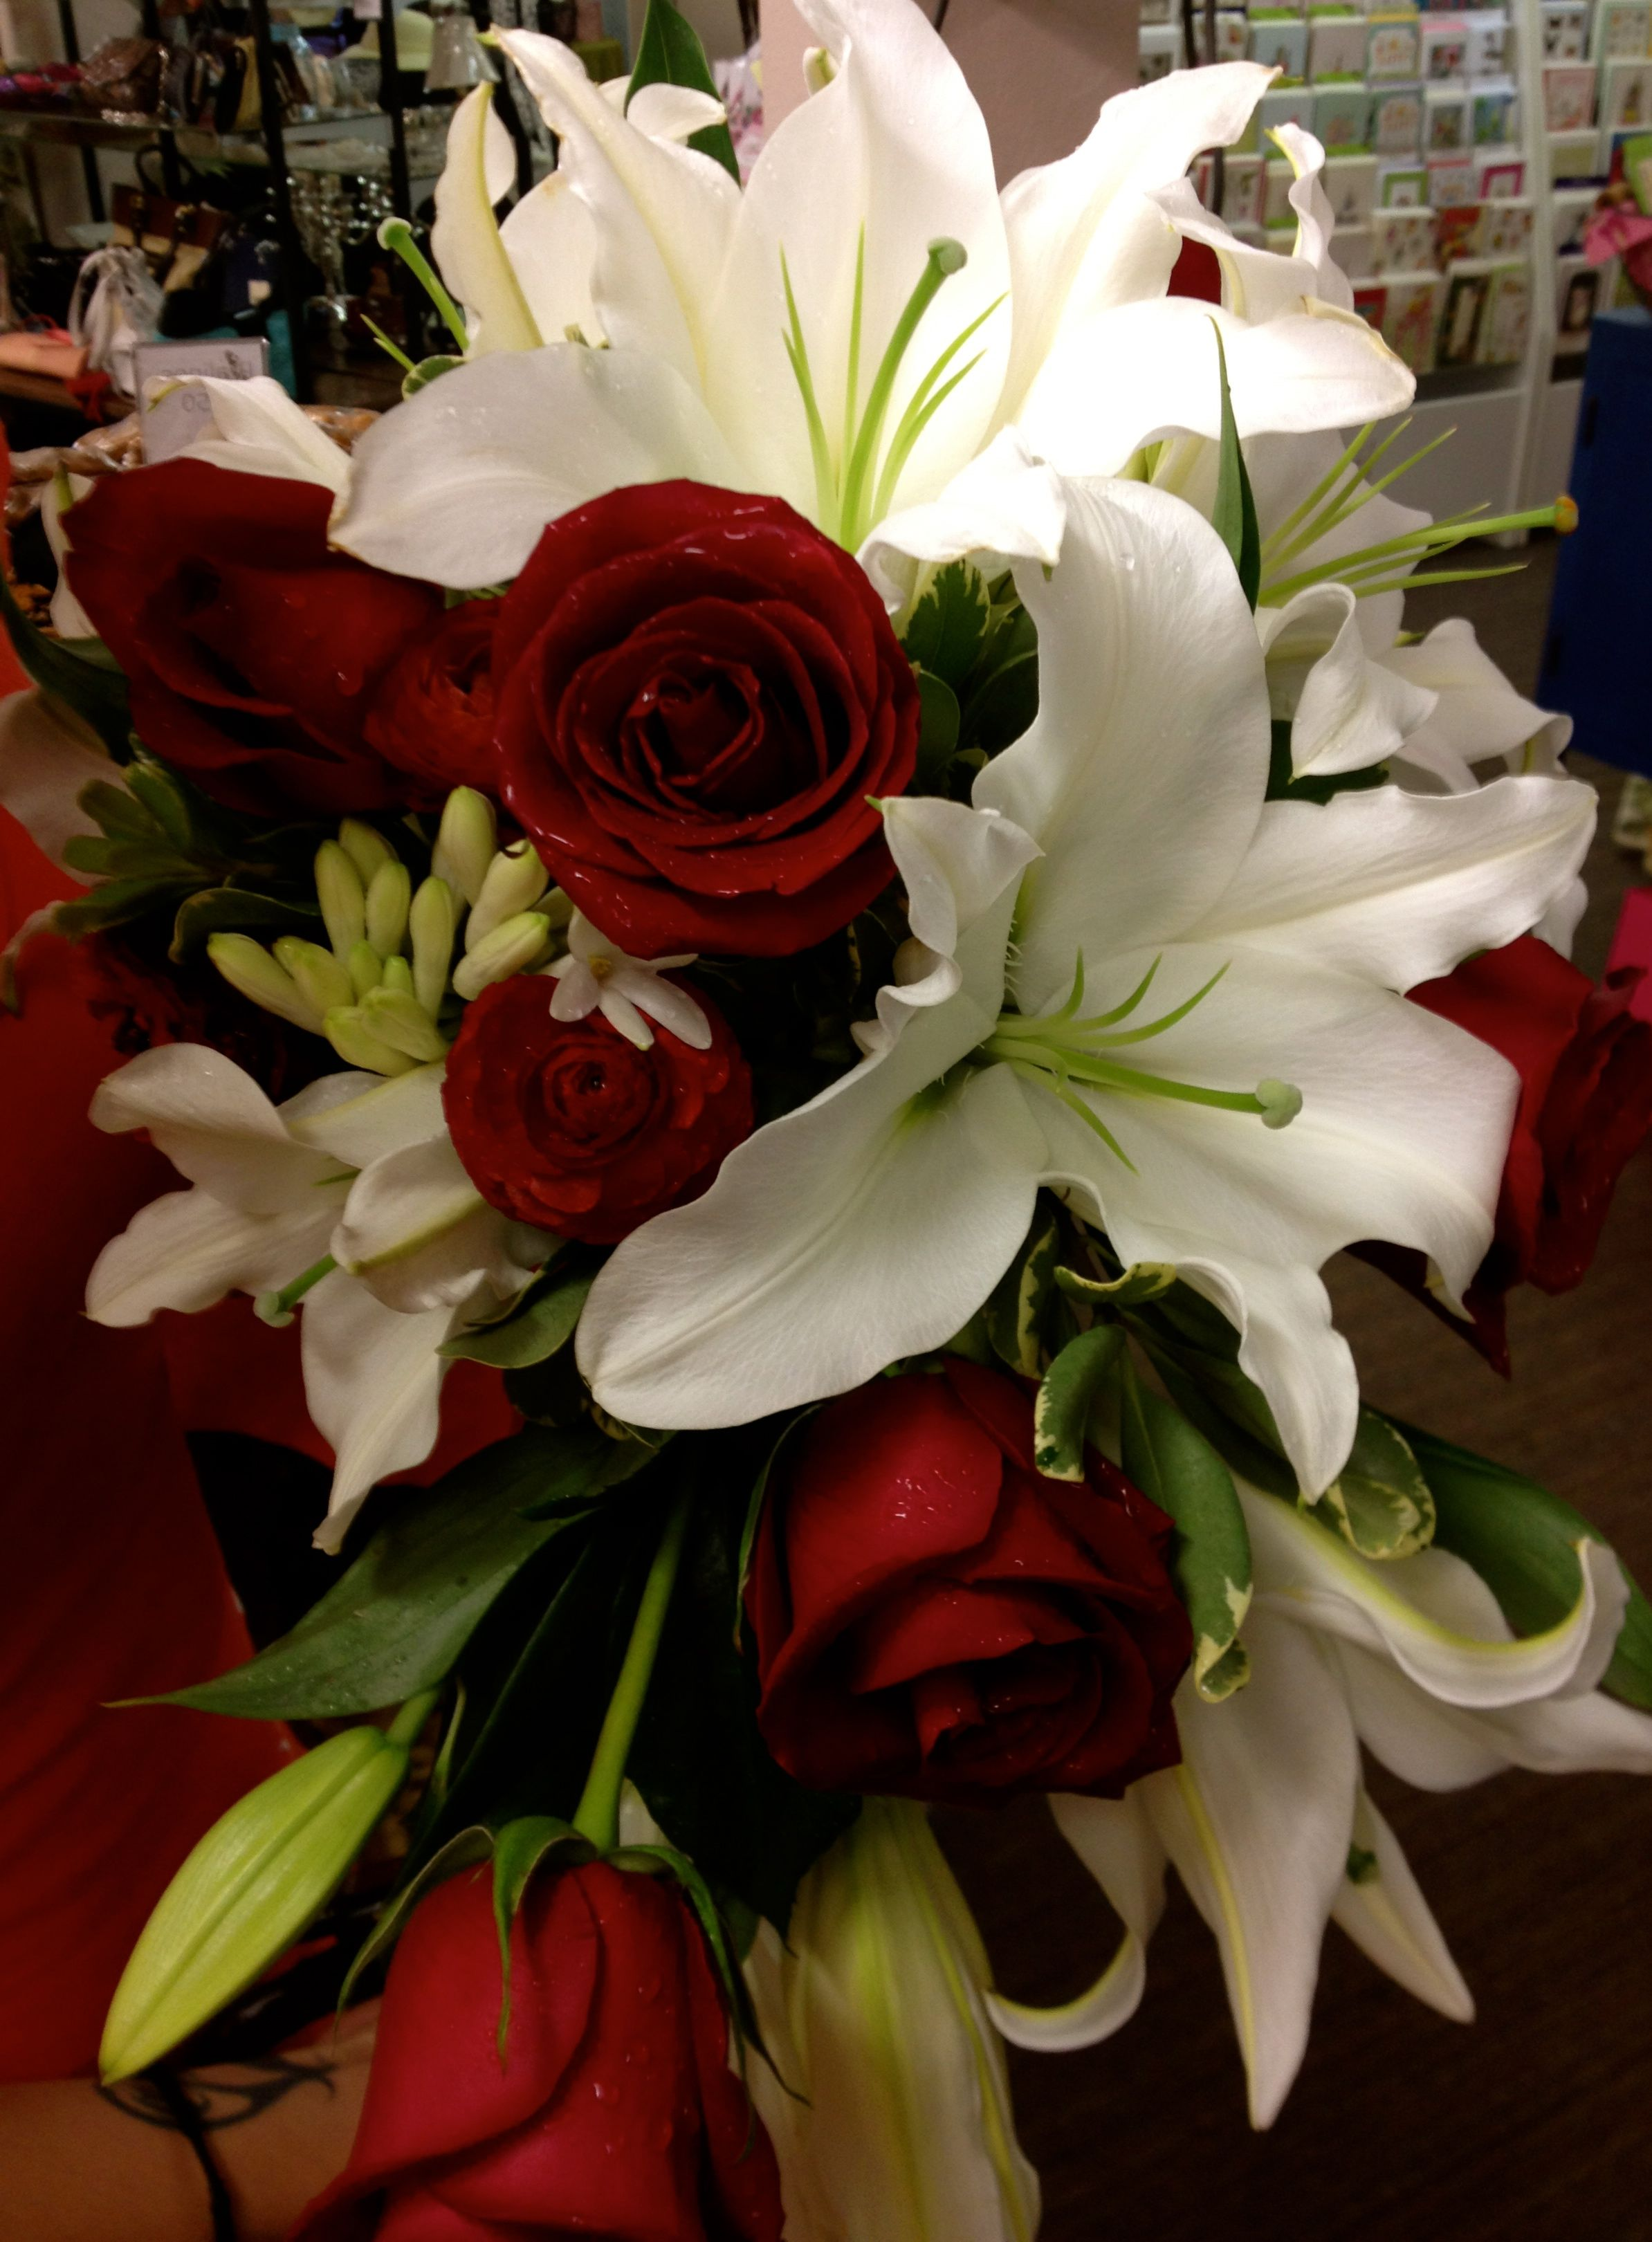 Cascade of white lilies and red roses flower bouquet